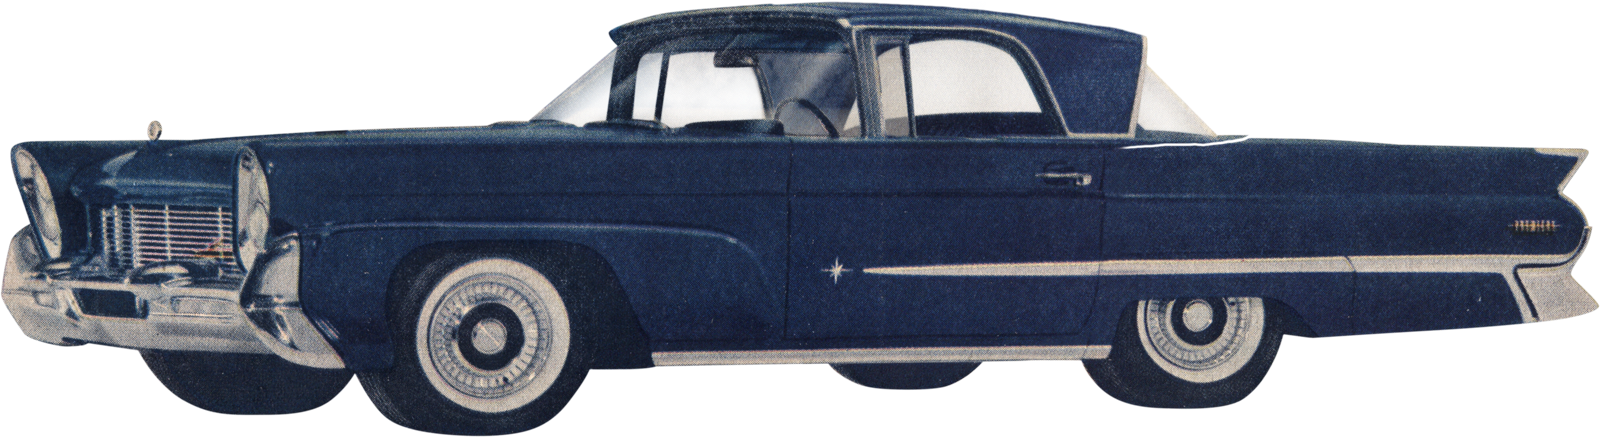 1946 car clipart image transparent library Phil Are Go!: 1958 Lincoln Continental - Lincoln In-Continental? image transparent library